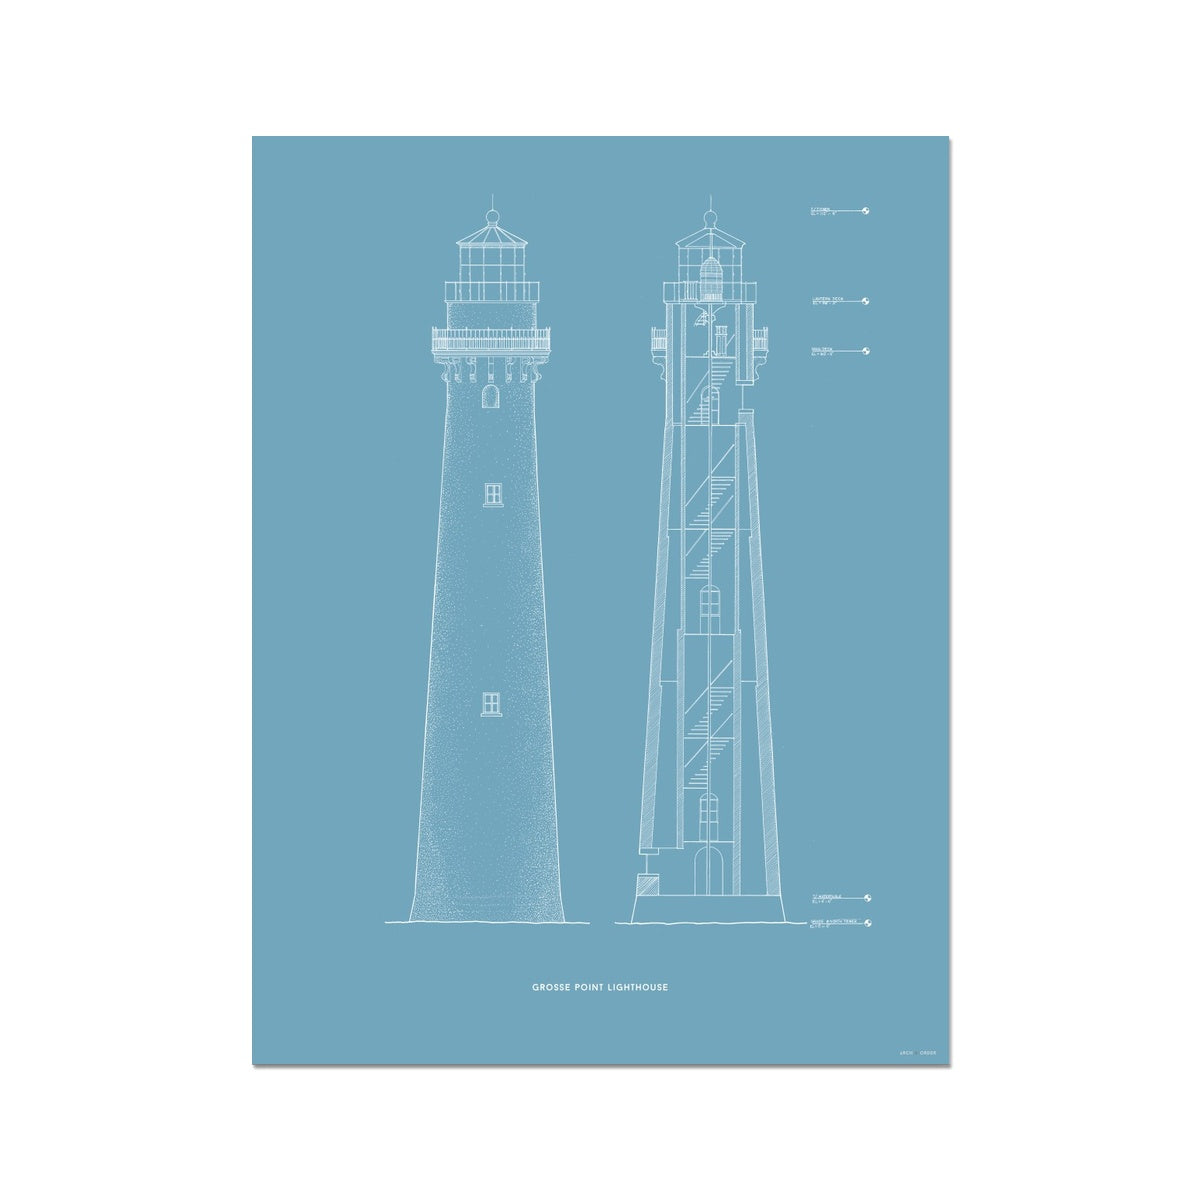 Grosse Point Lighthouse - East Elevation and Cross Section - Blue -  Etching Paper Print